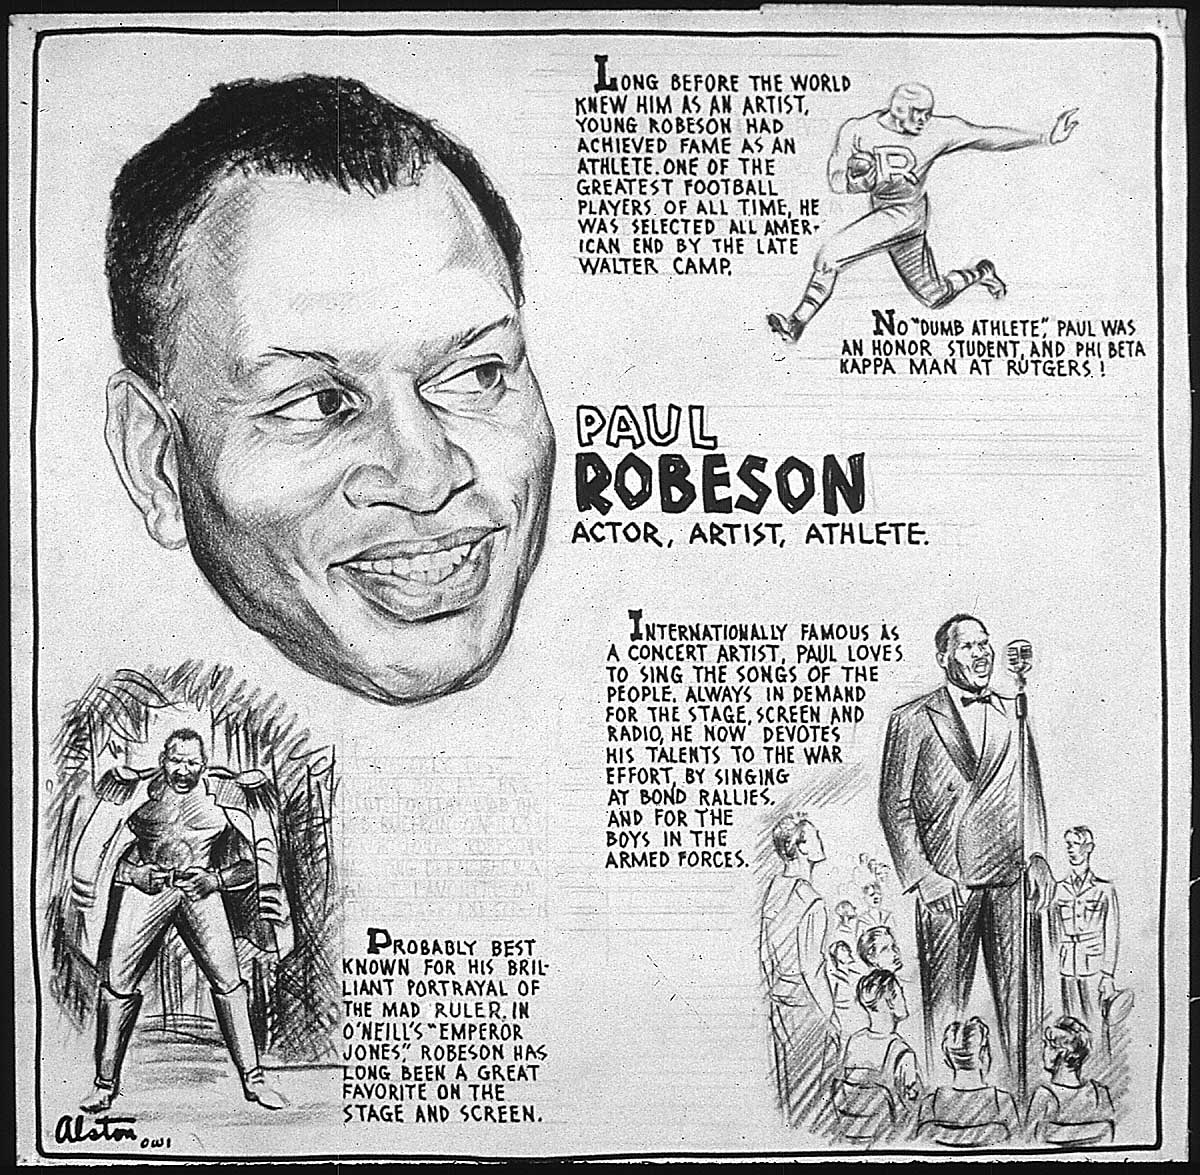 drawing of Robeson as actor, artist, athlete